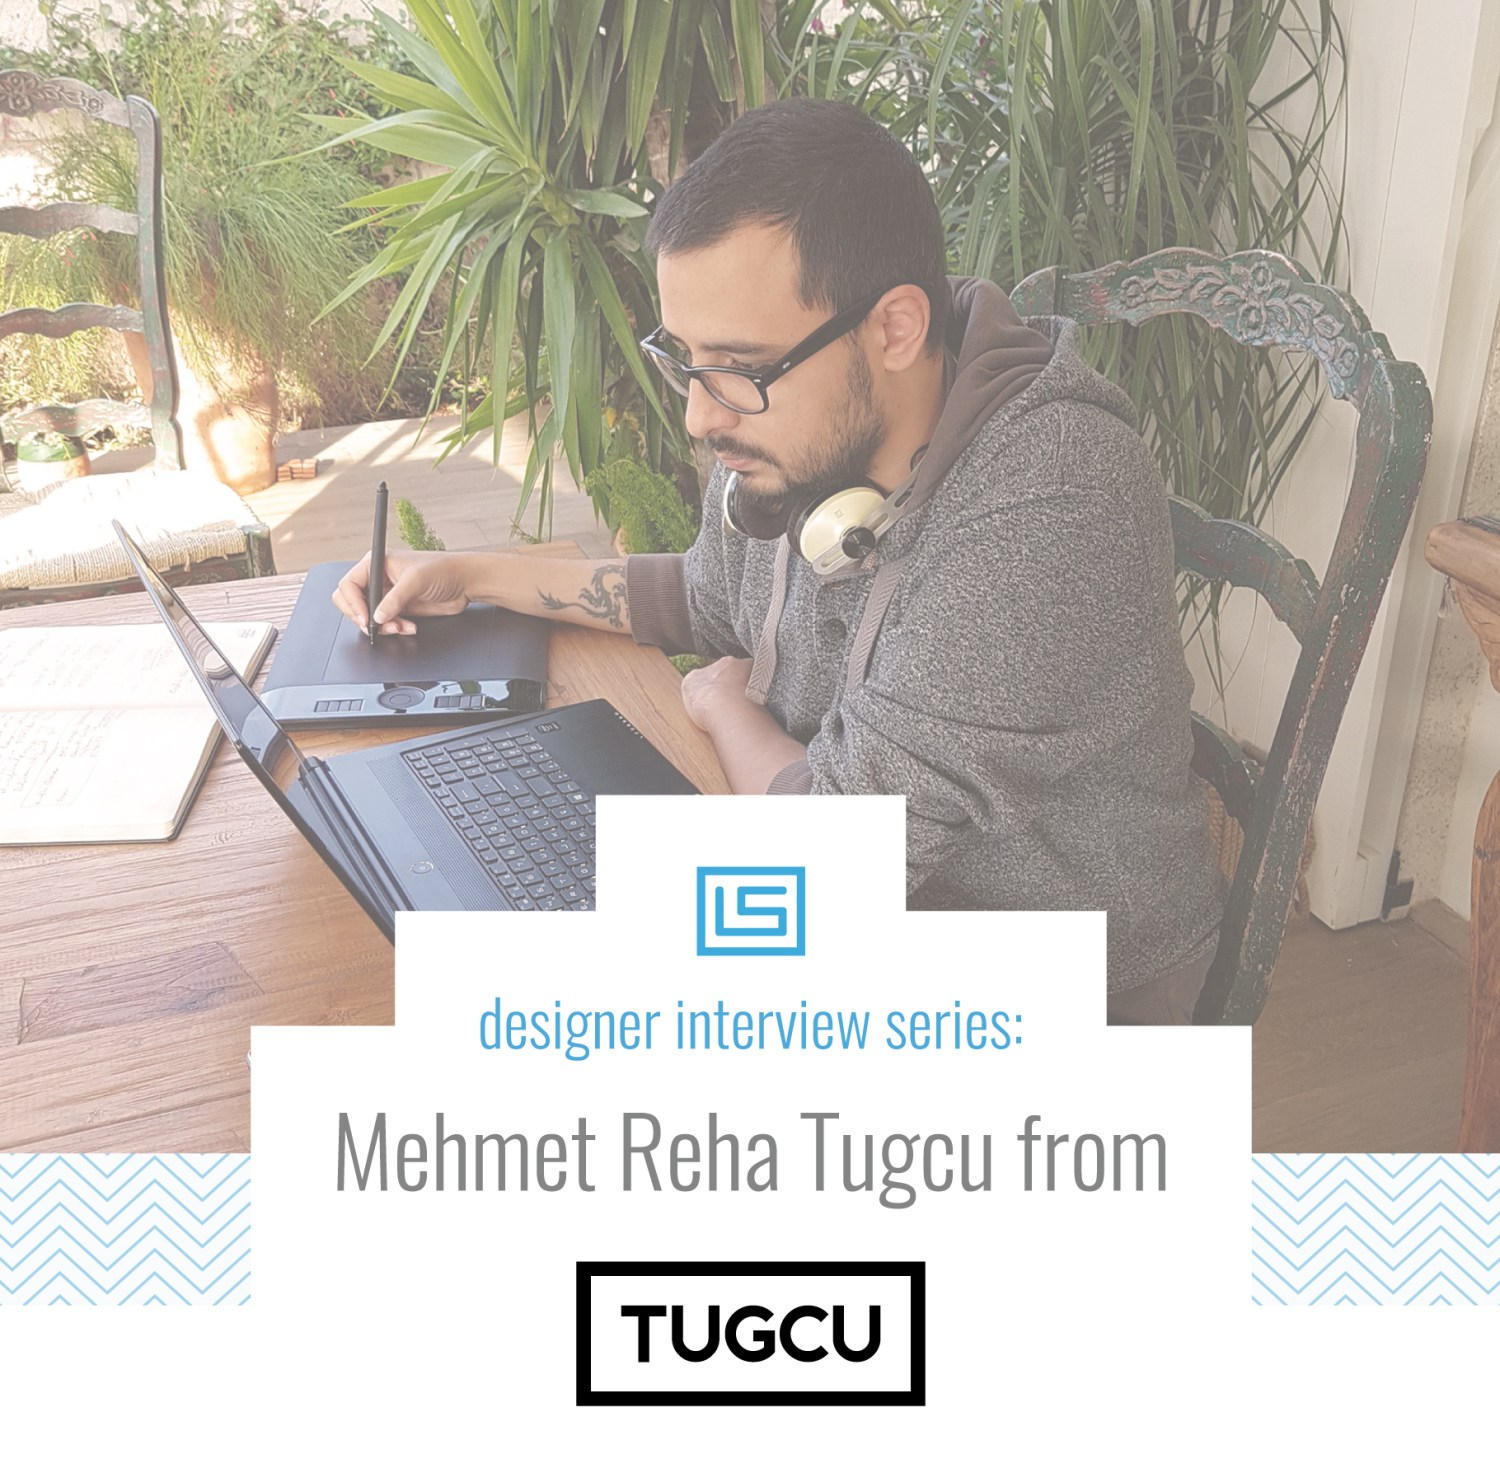 Tugcu Design Co.